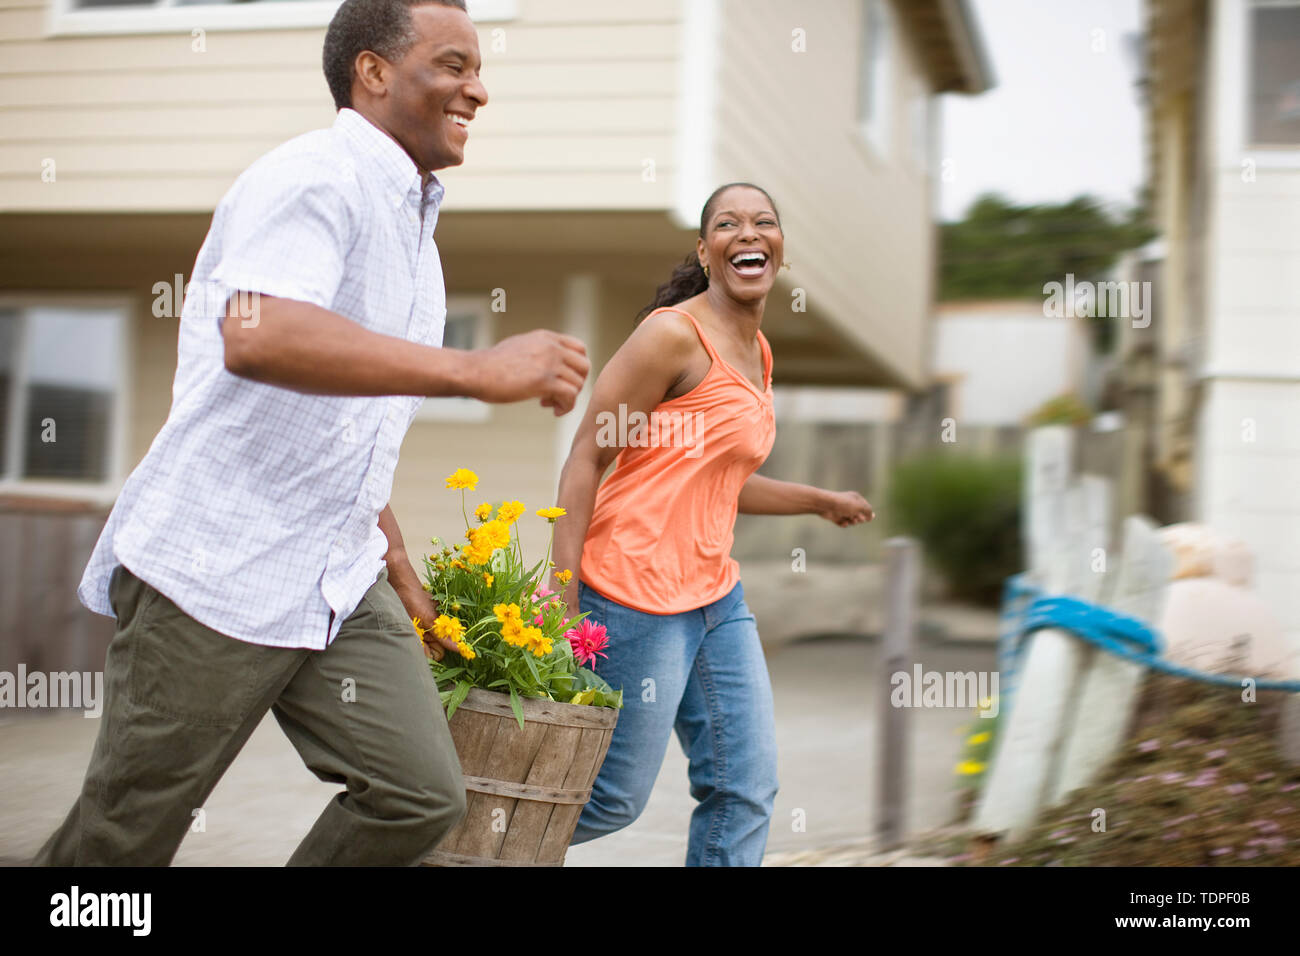 Couple carrying planter of flowers - Stock Image